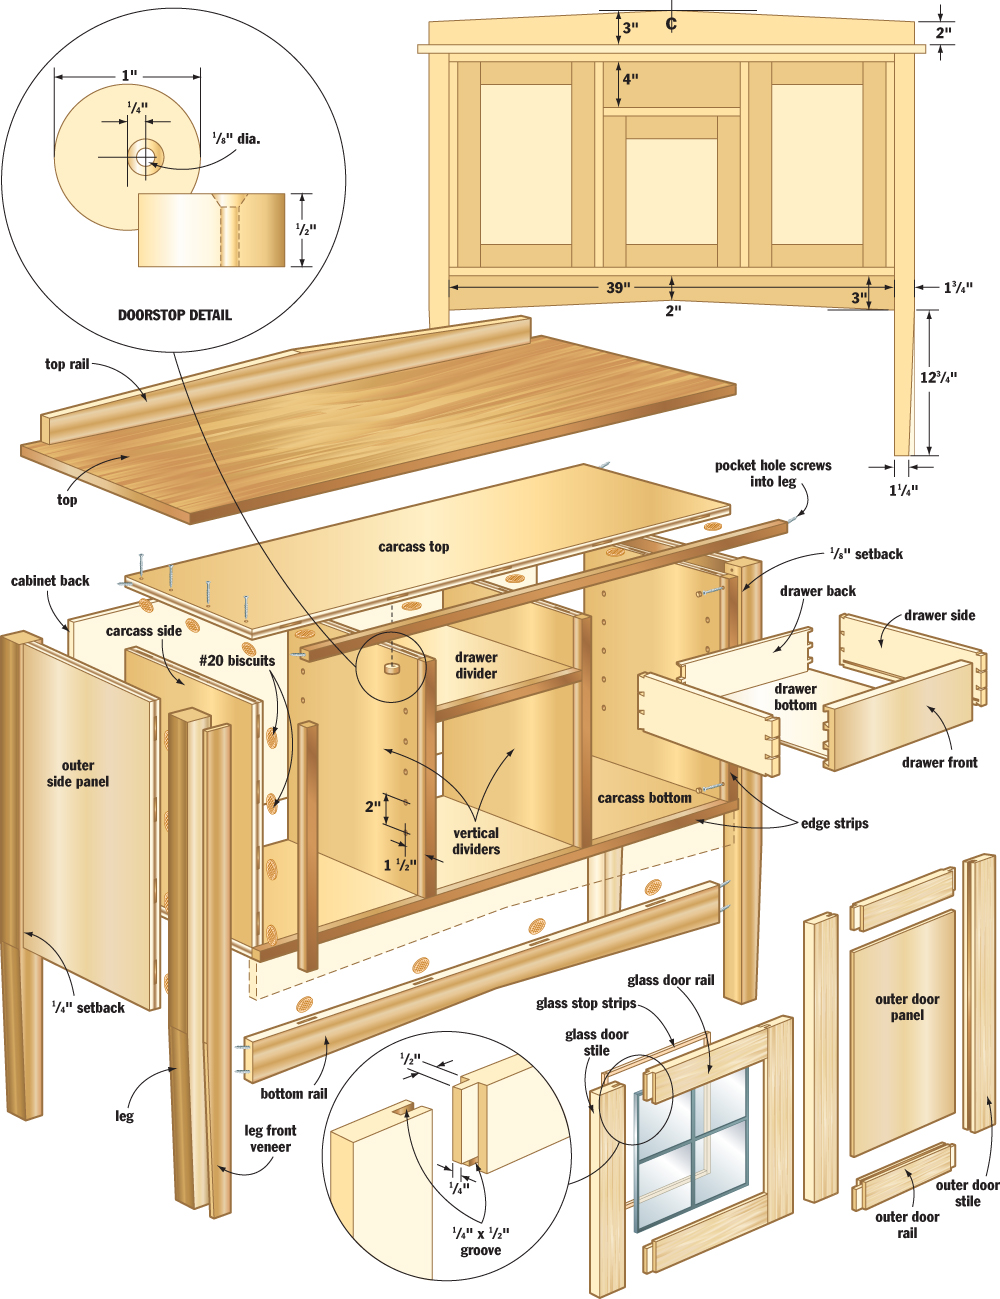 Woodwork wood plans sideboard pdf